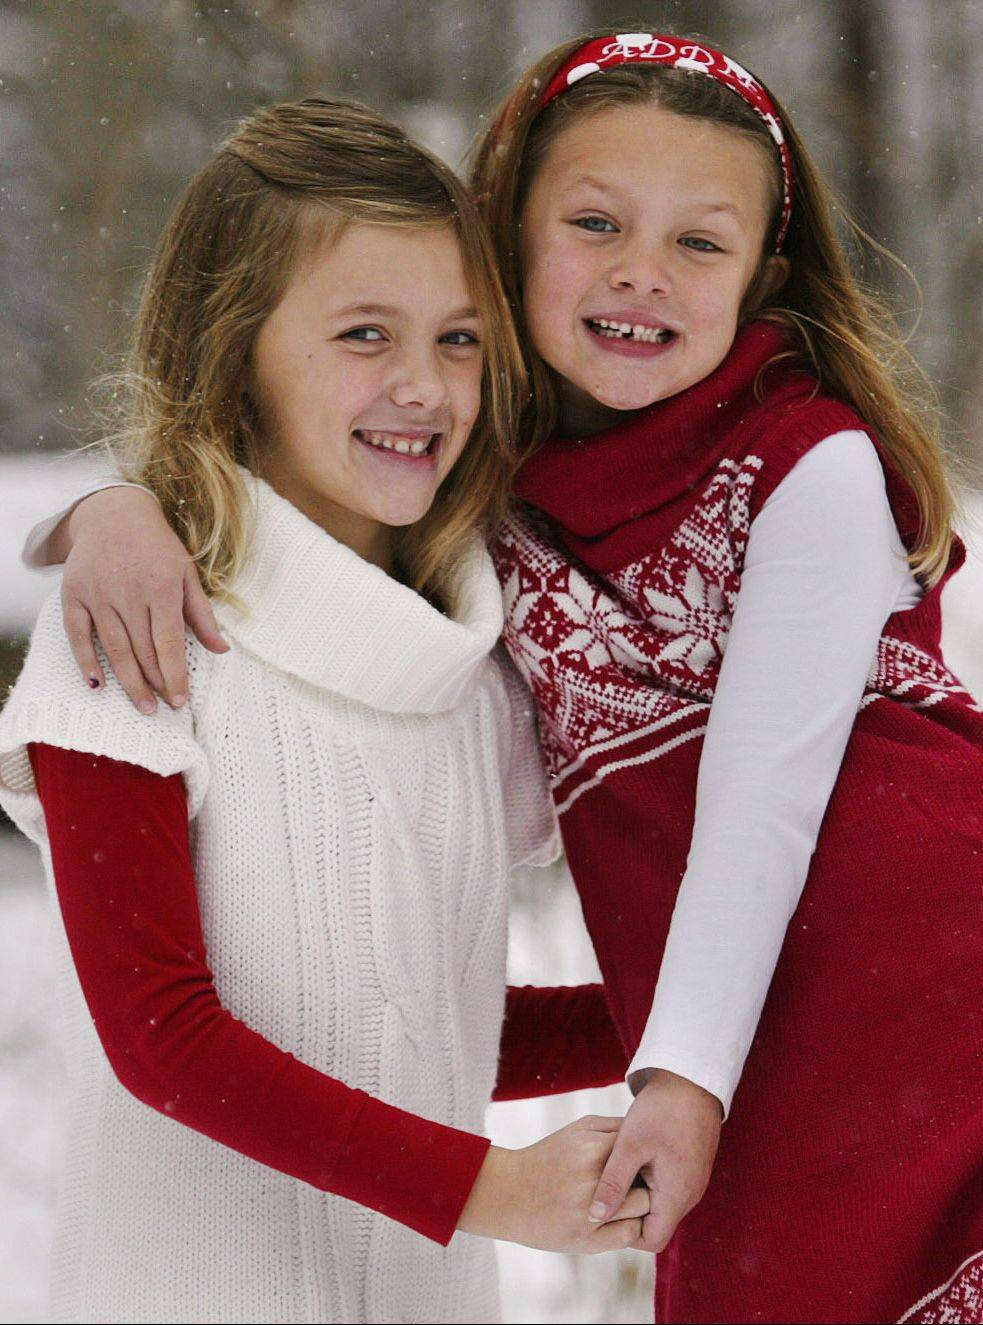 Clare, left, and Addie Hankins pose for a portrait as they play in the snow. It is important to use a lens with a longer focal length, such as a 100 mm or longer, to shoot portraits to soften the background and accentuate the subject.